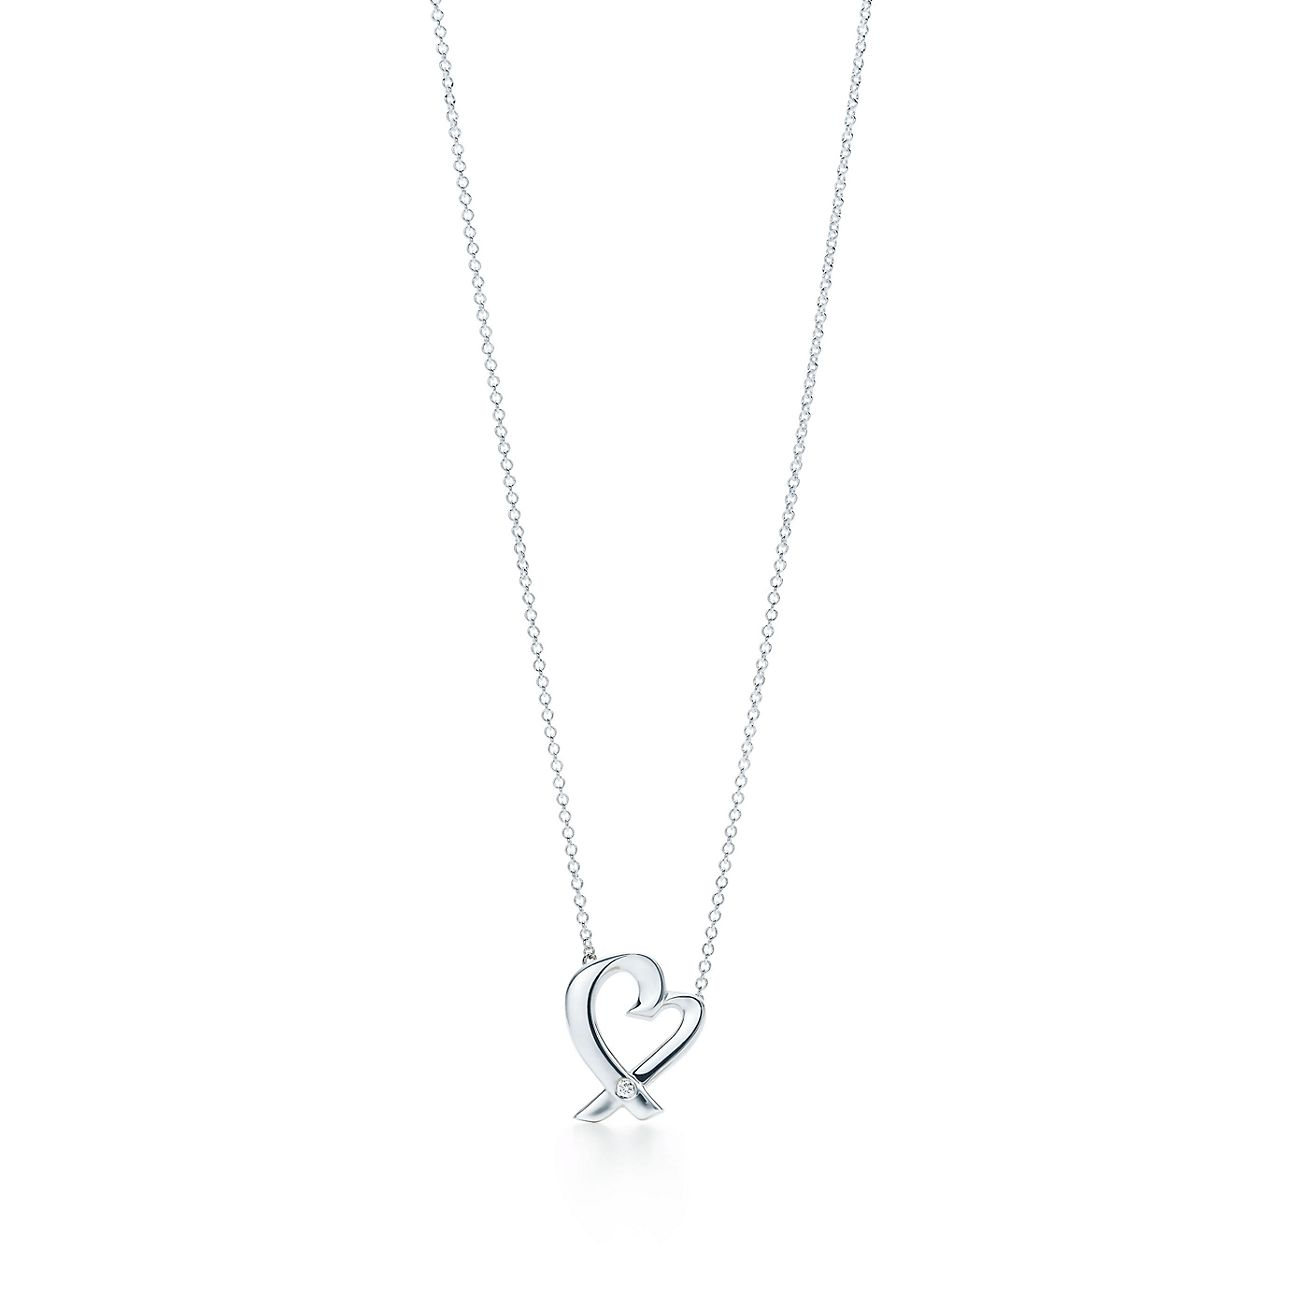 Paloma picasso small loving heart pendant tiffany co paloma picassoloving heart pendant aloadofball Gallery